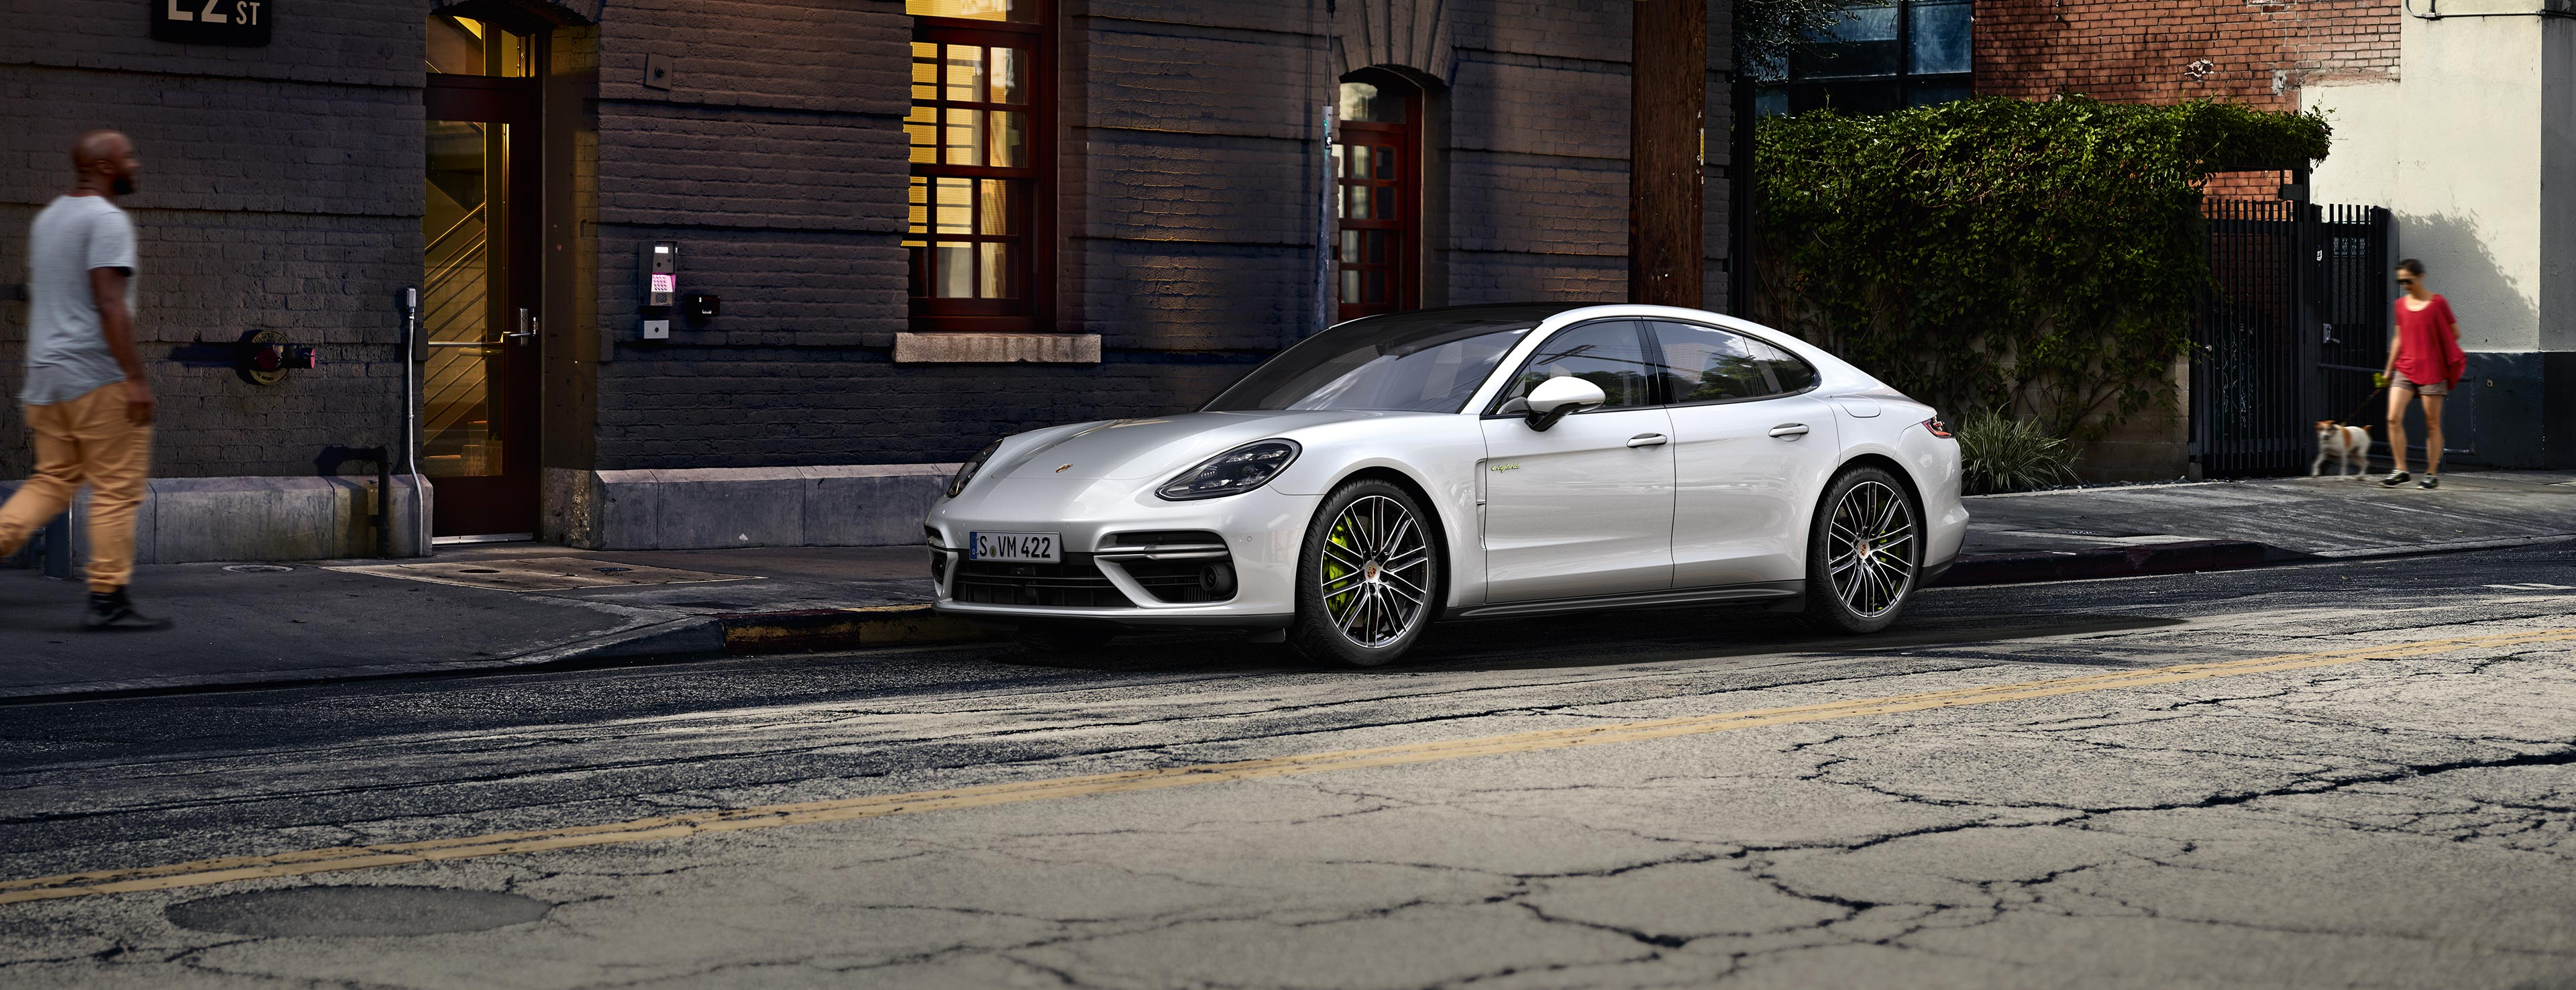 porsche panamera e hybrid models porsche ag. Black Bedroom Furniture Sets. Home Design Ideas